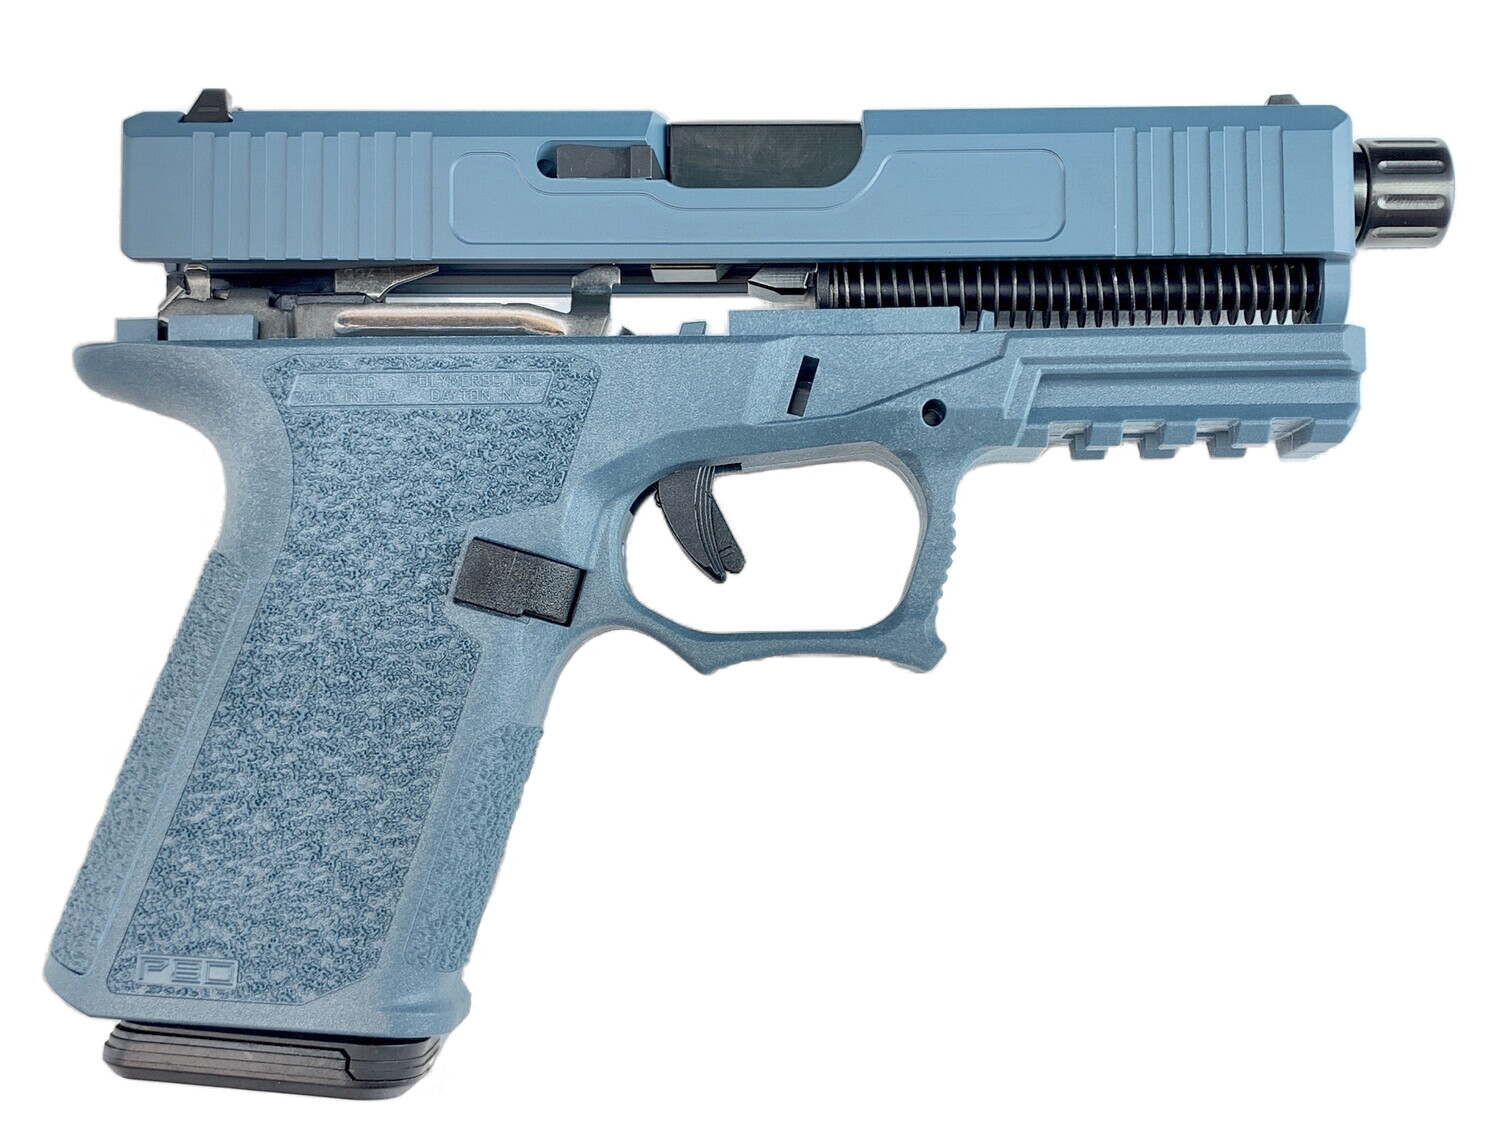 Patriot G19 80% Pistol Build Kit Threaded Black DLC 9mm Barrel - Polymer80 PF940C - Jesse James Blue - 10rd Mag